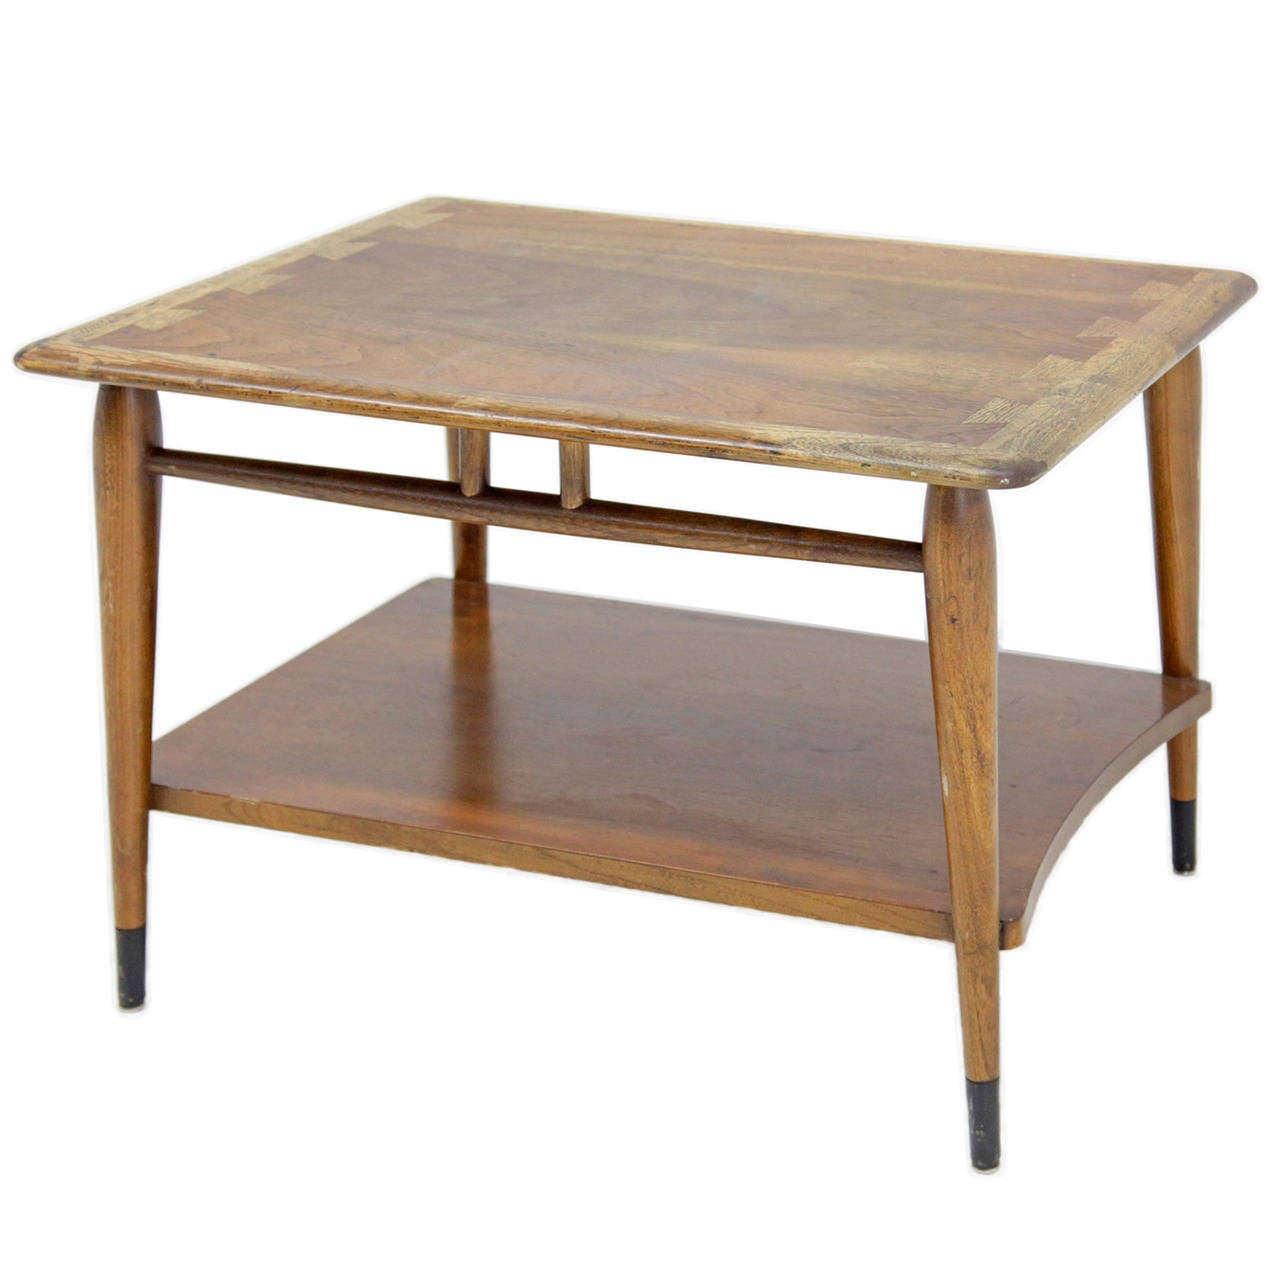 Beautiful Couch-Table or Coffee Table from Lane Altavista, Virginia, USA, 1962 at 1stdibs